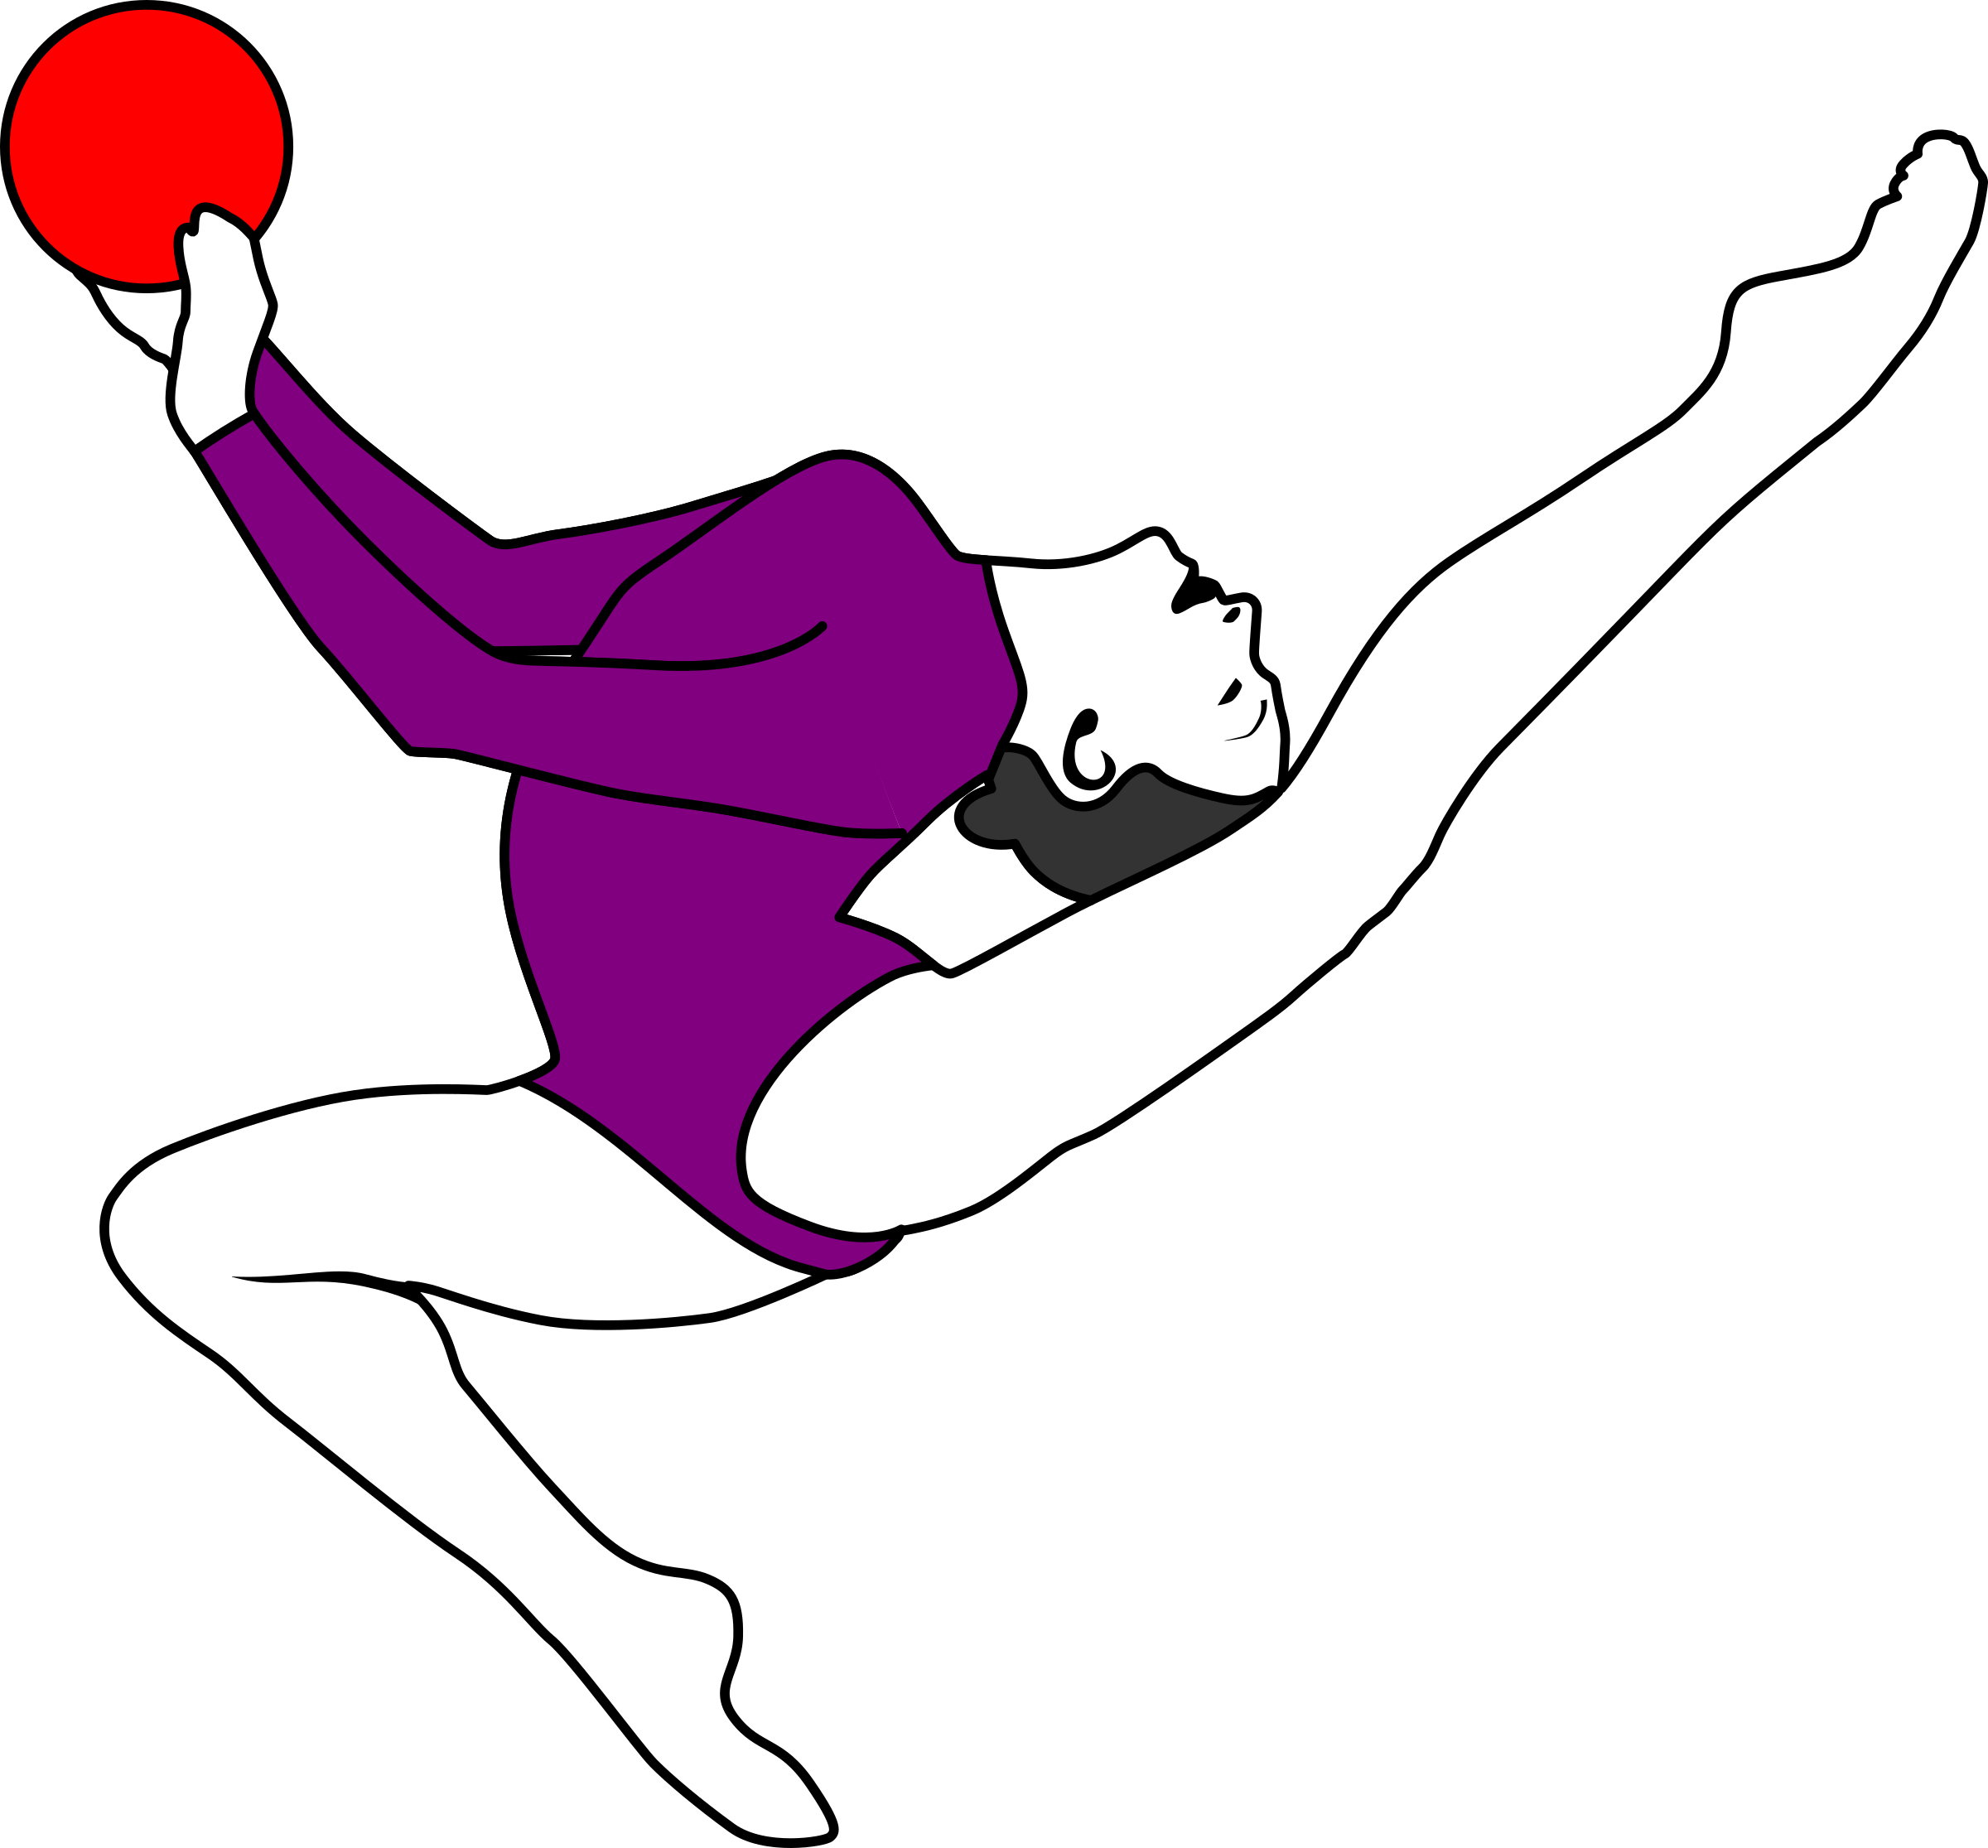 Ball clipart gymnastics. Rhythmic with icons png